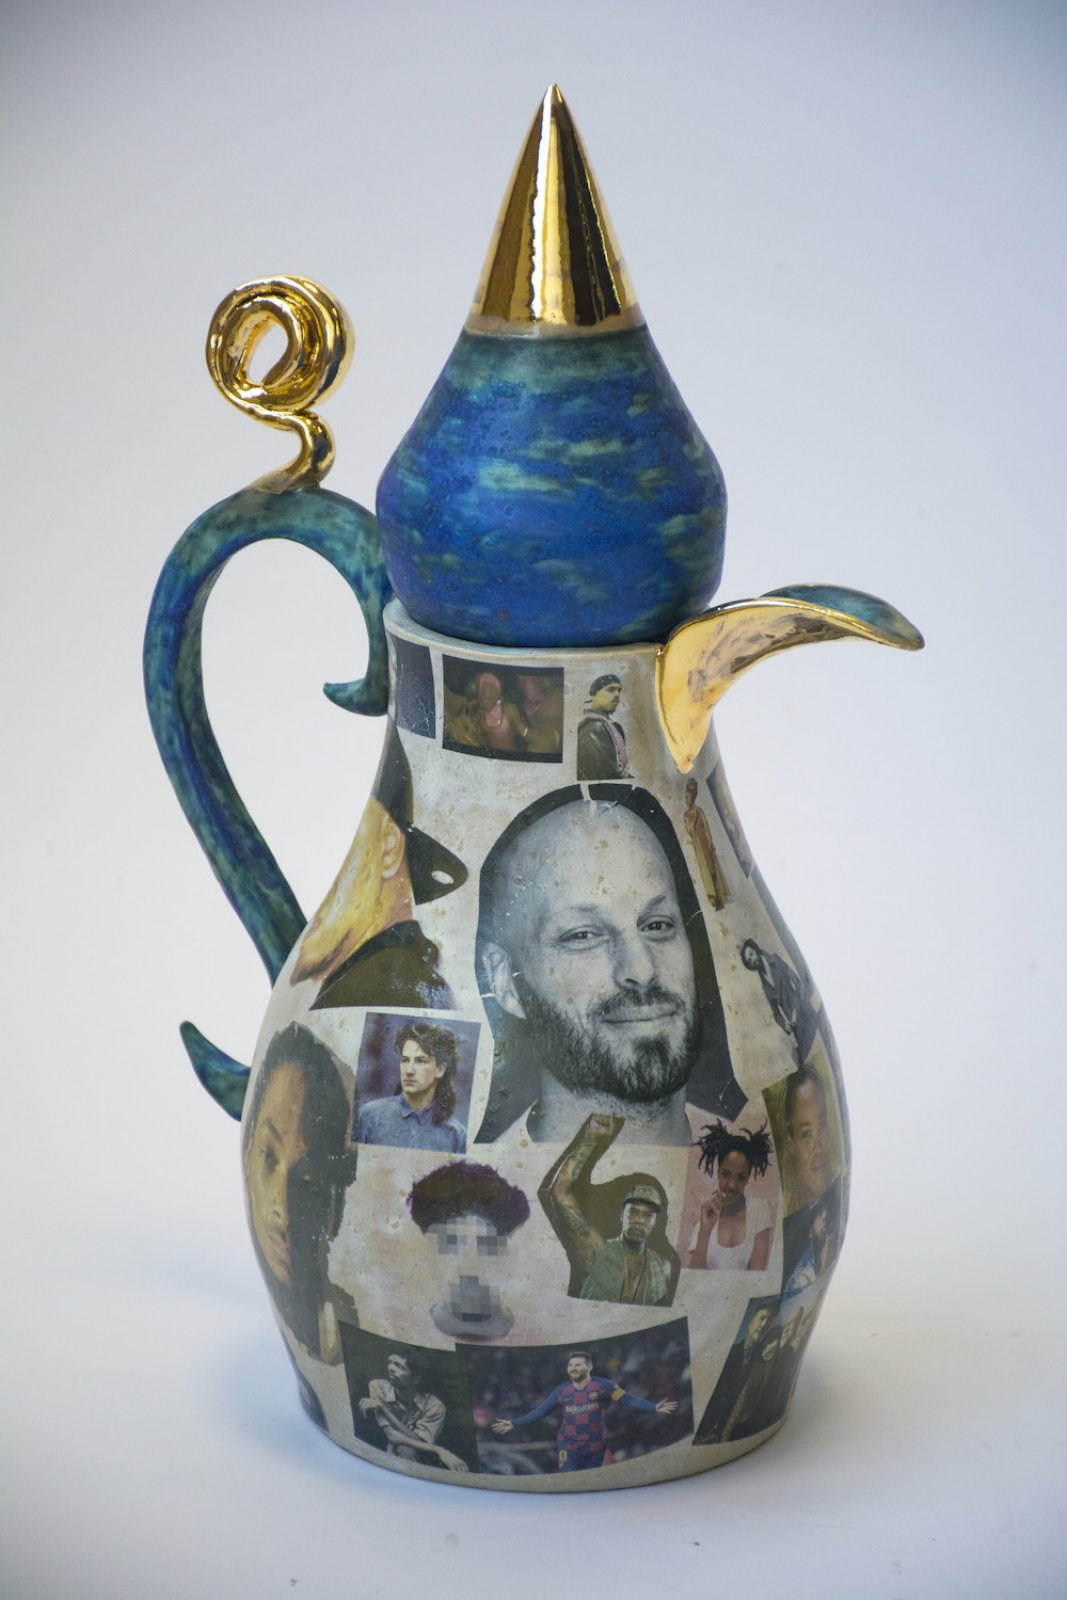 Teapot in collaboration with WONNE, 2020 © Susanne Khalil Yusef